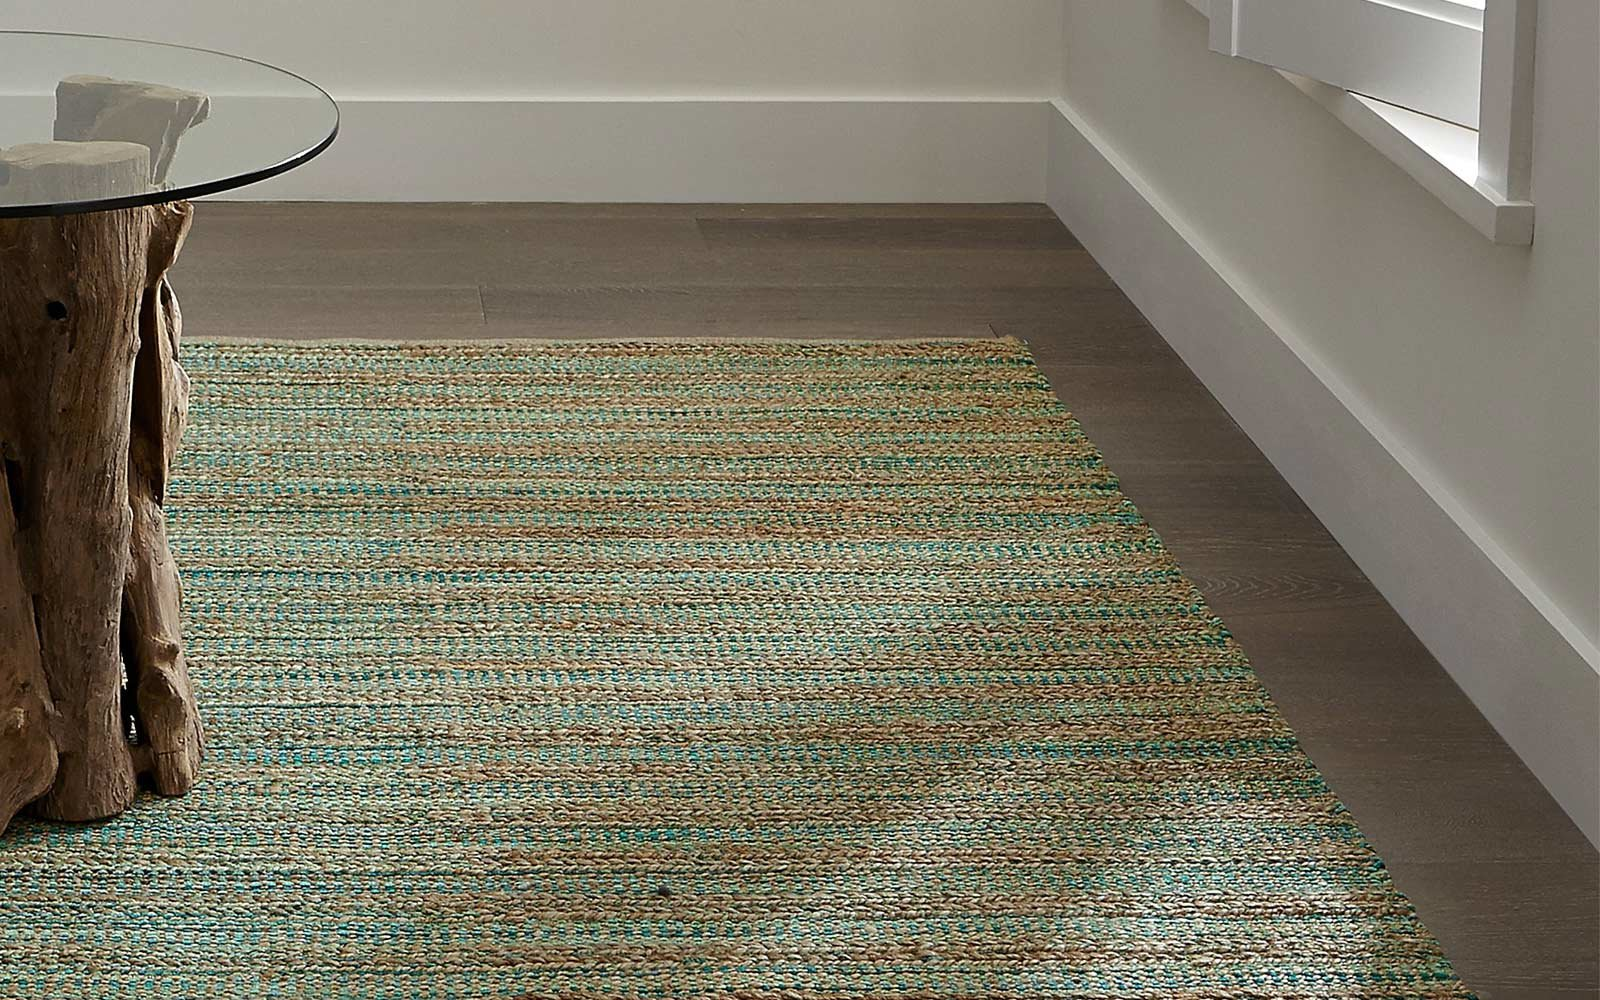 Crate and Barrel Jarvis Teal Blue Jute Blend Rug